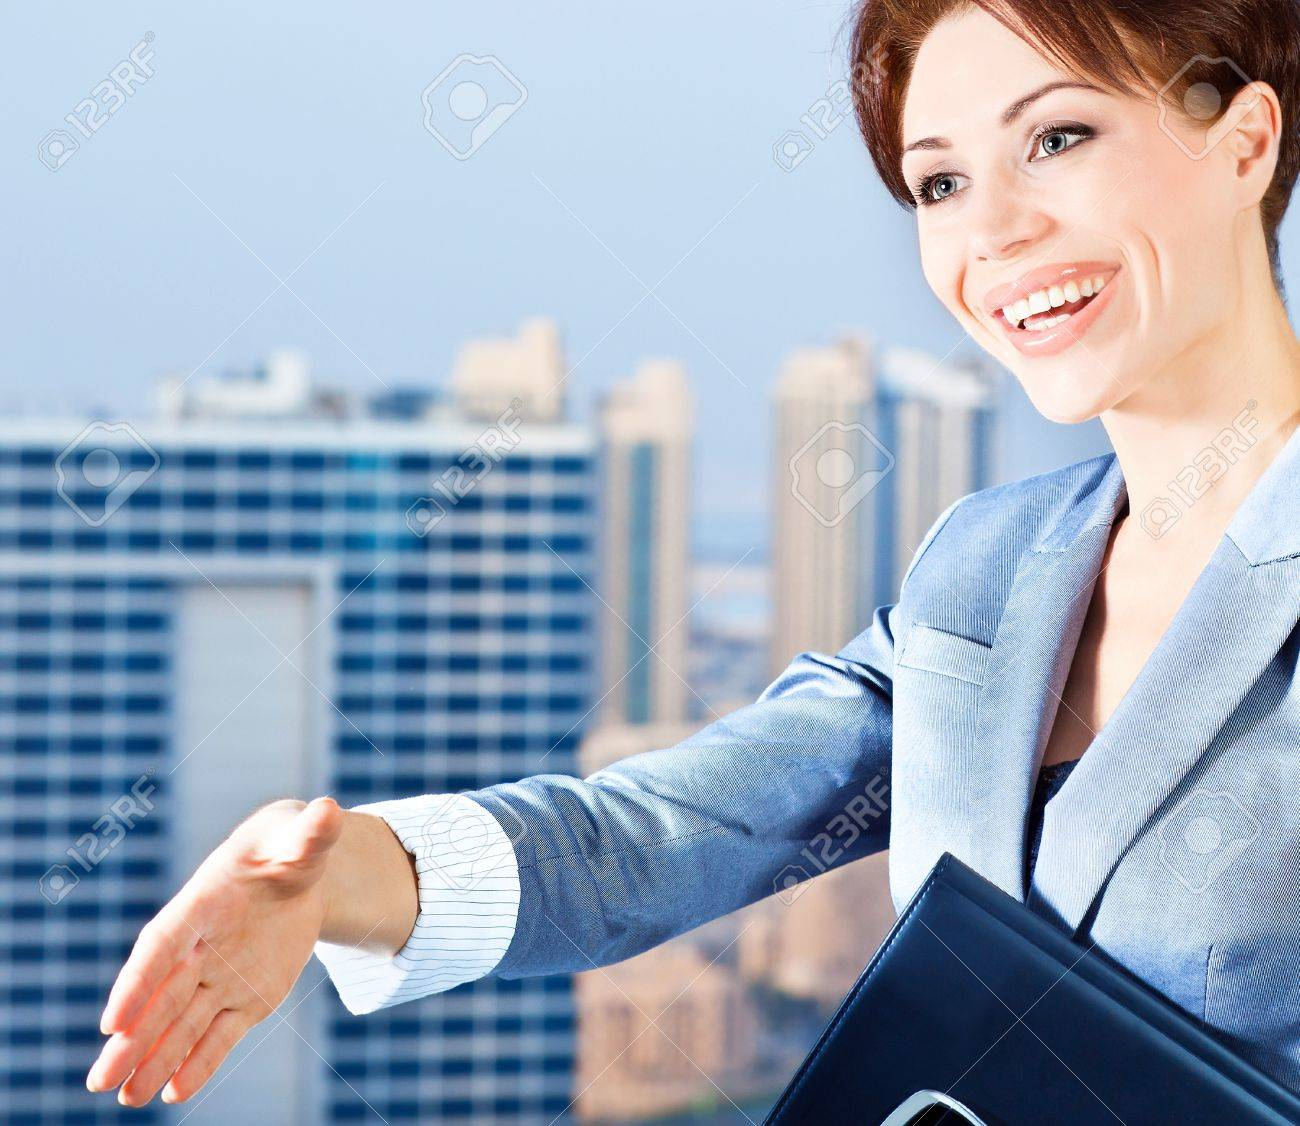 successful businessw making a deal young smart office worker stock photo successful businessw making a deal young smart office worker w over blue sky city background handshake business lifestyle